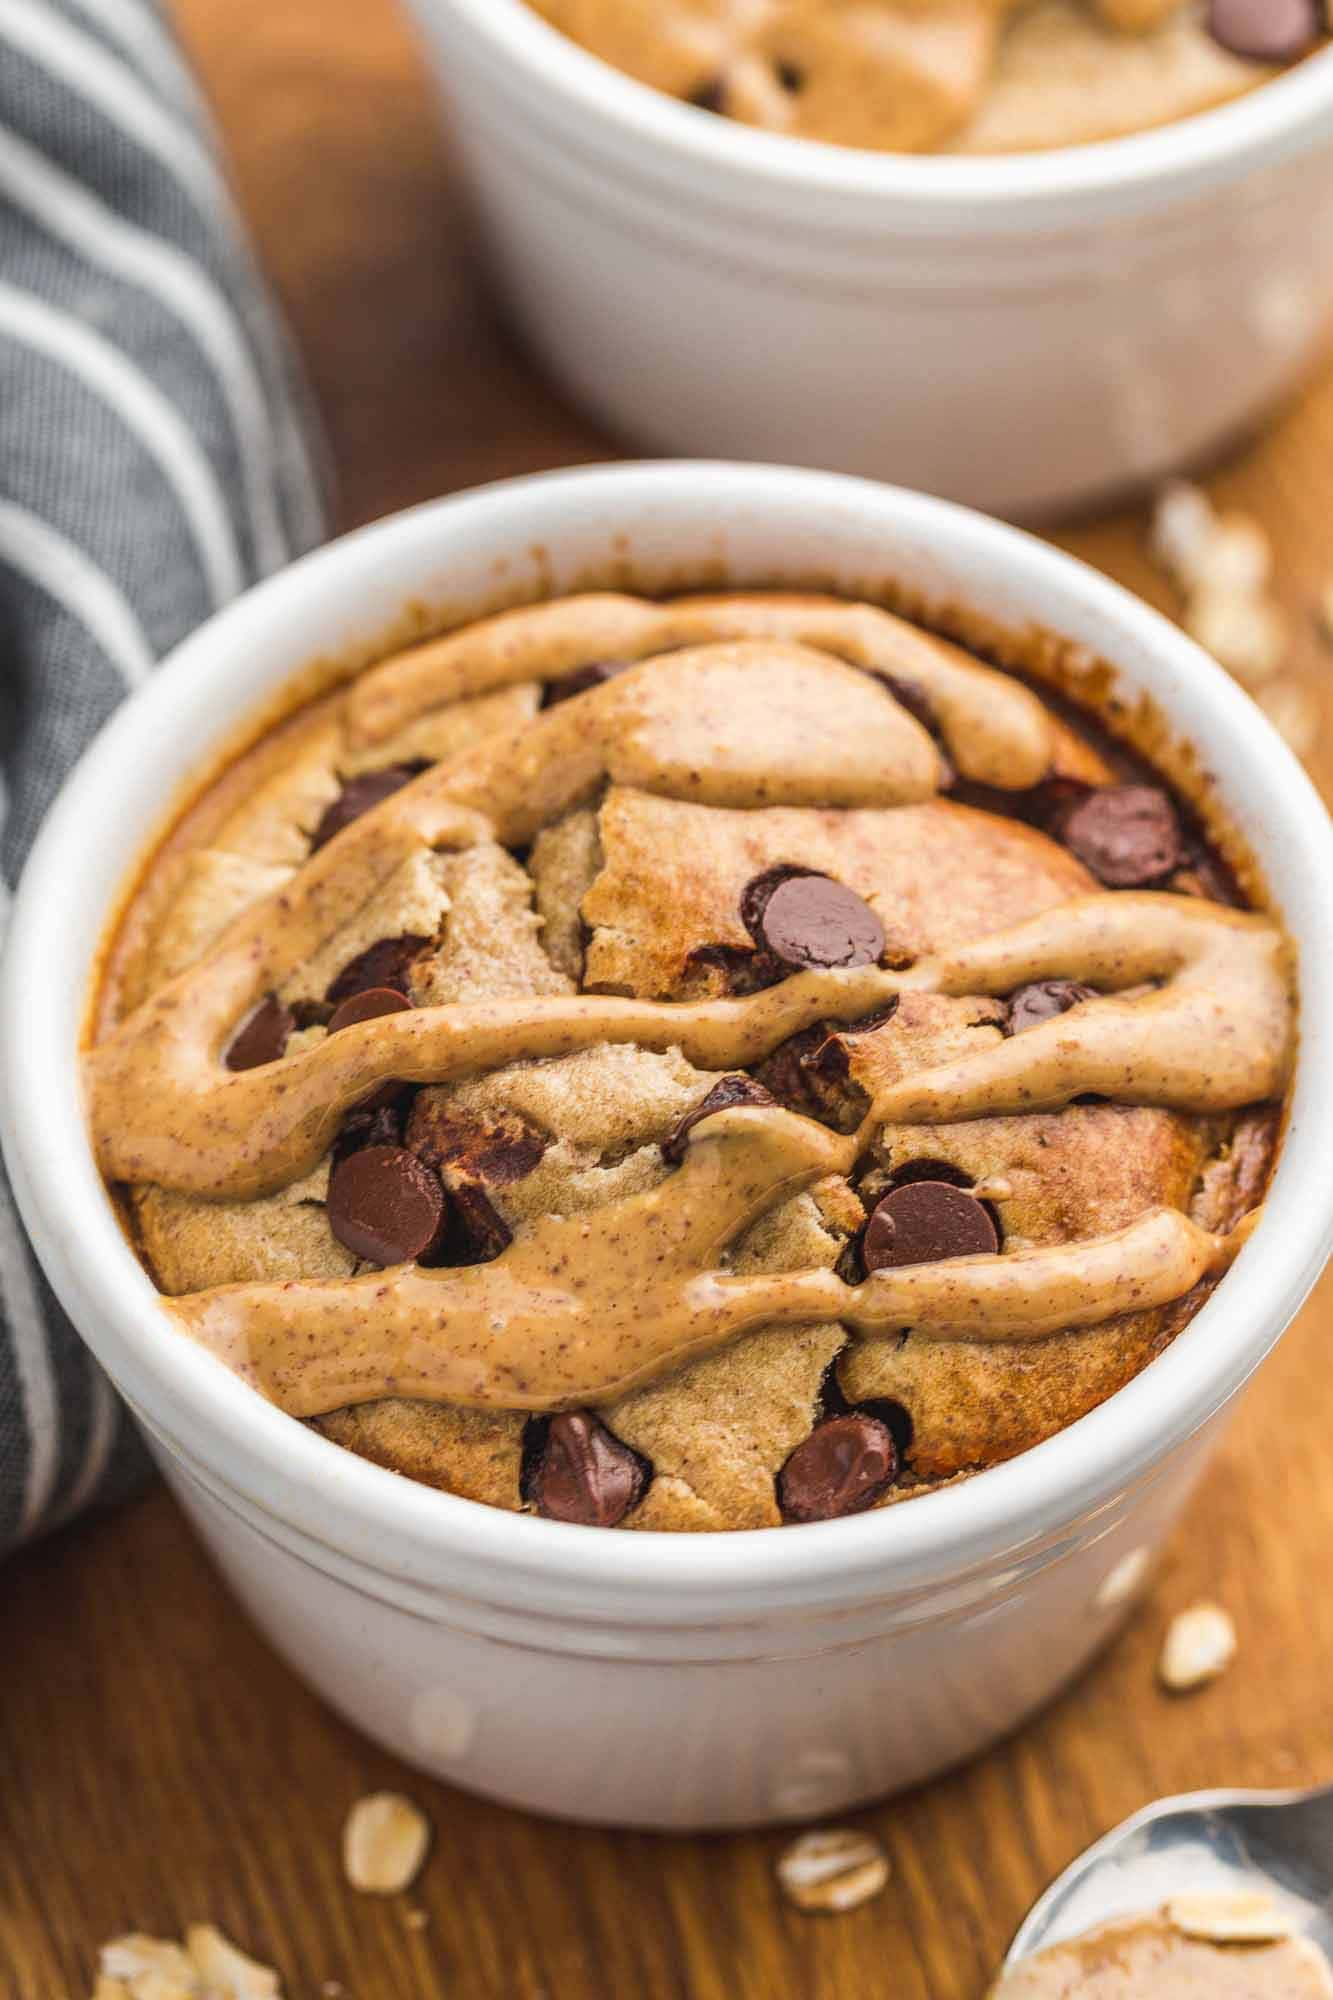 Baked Oats in white ramekin with chocolate chips, and a drizzle of peanut butter.